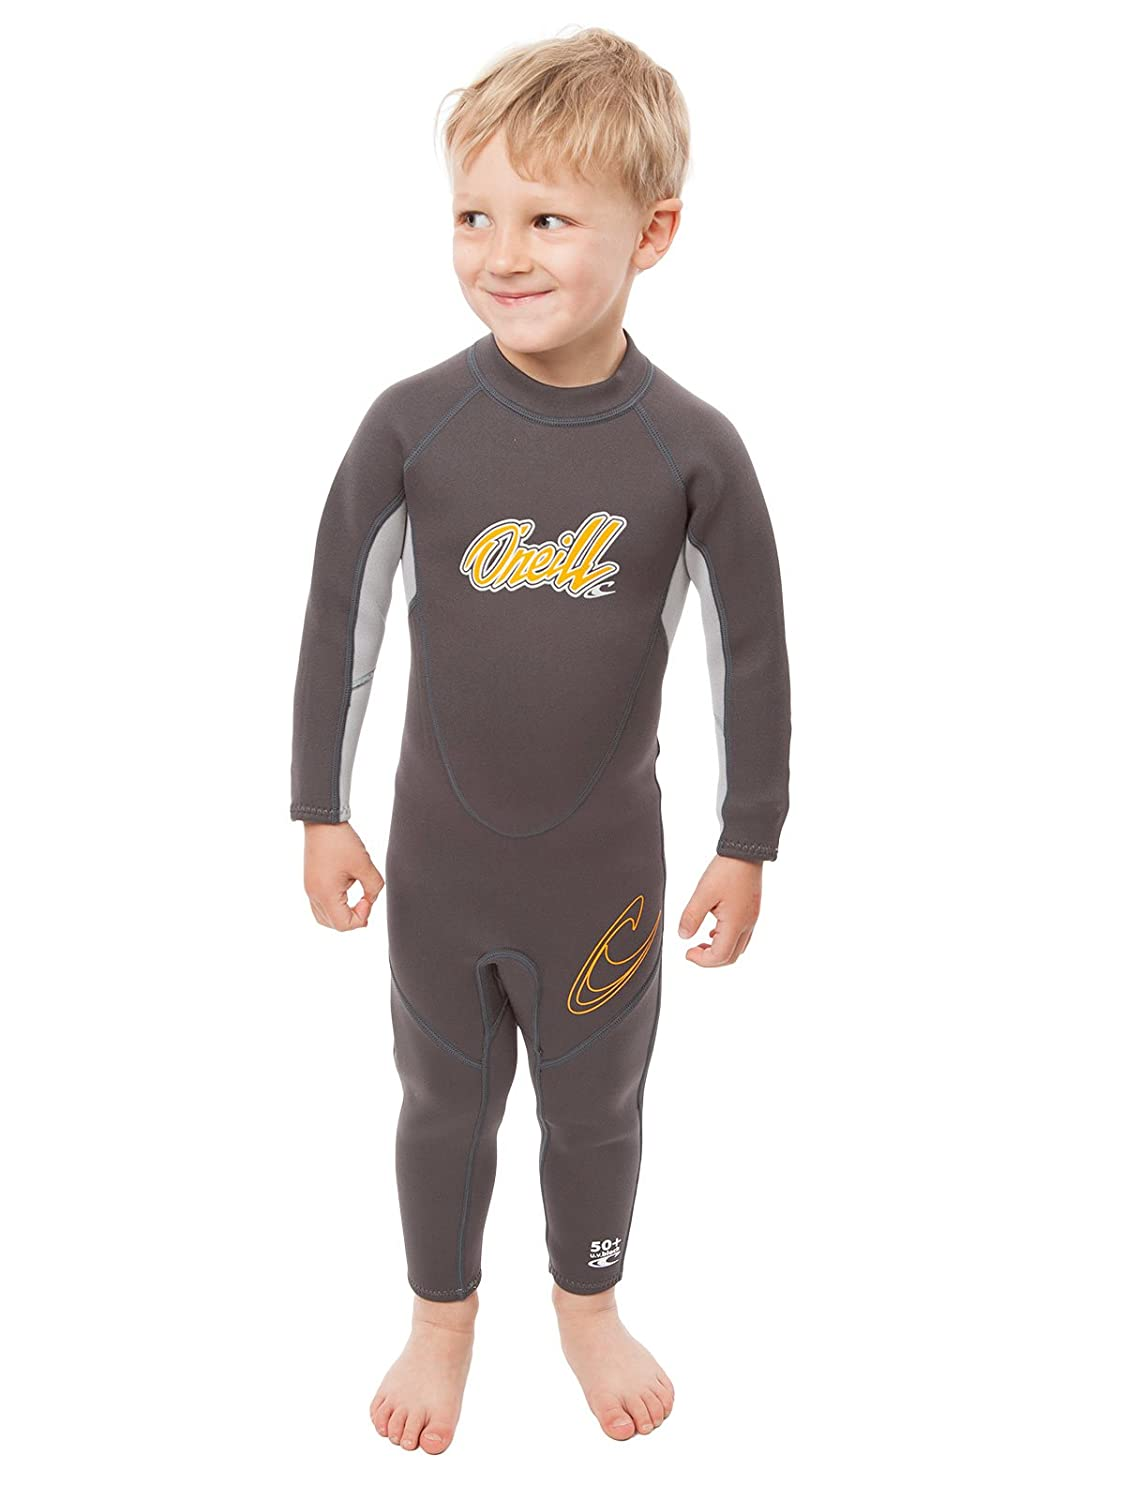 O'Neill Toddler & Little Kids Neoprene Full Body Wetsuit for Slender Children